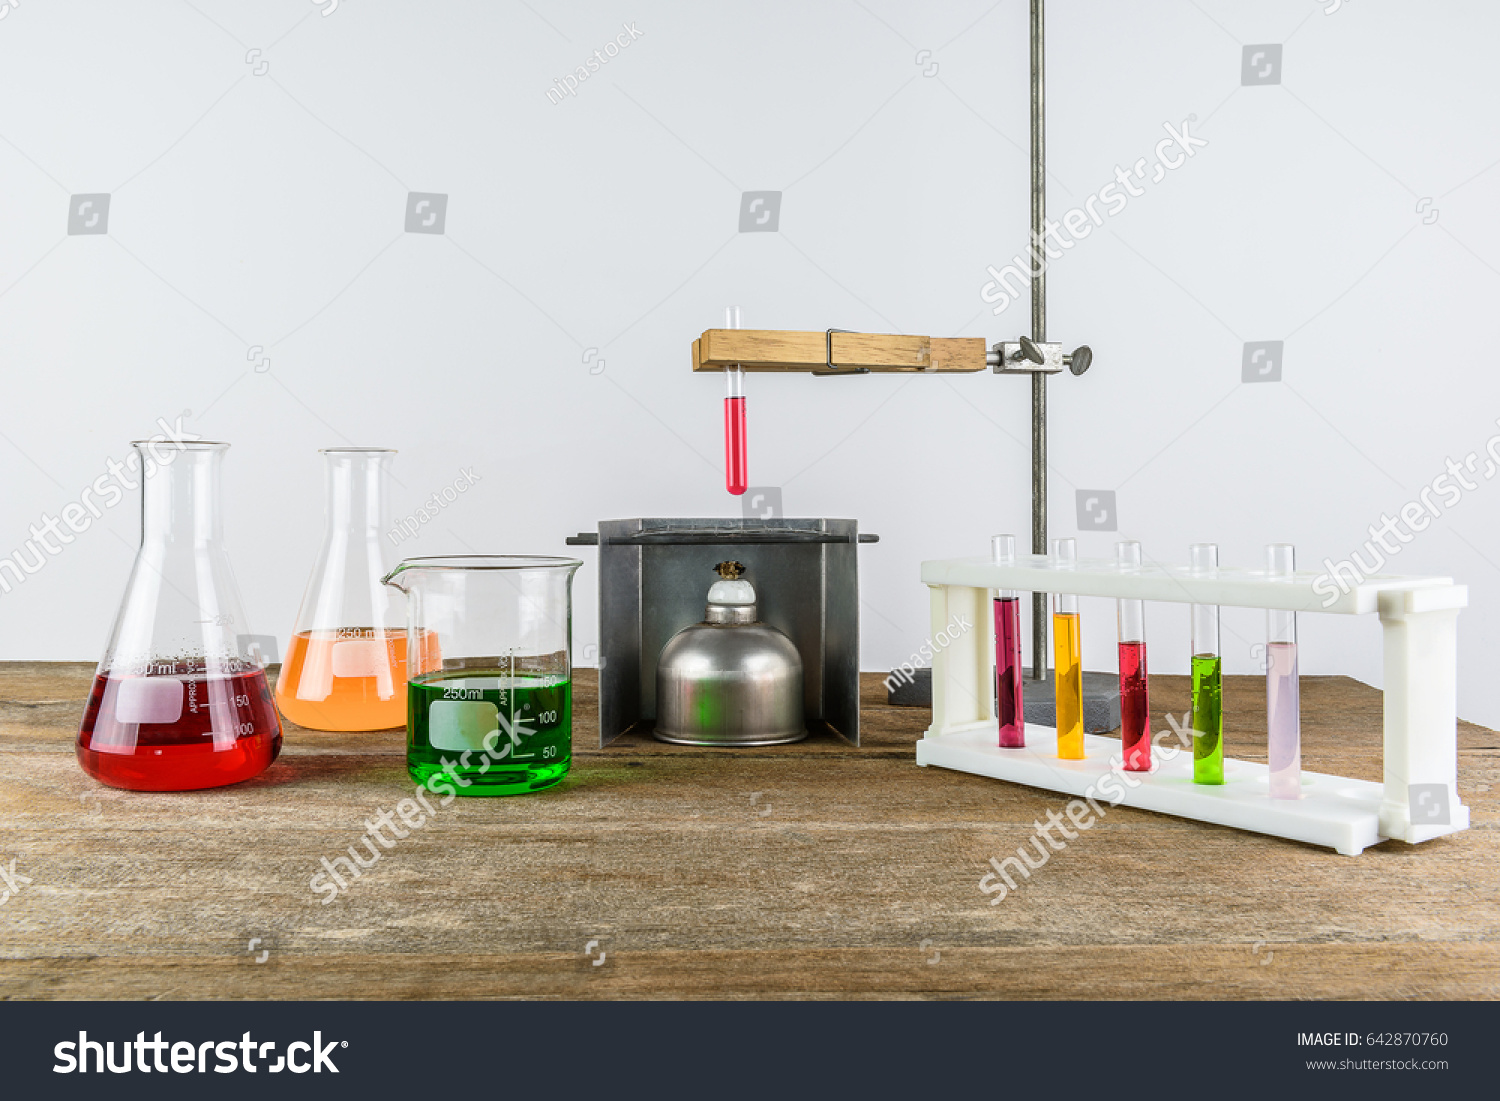 Laboratory Equipment Test Tube Holder Clamps Stock Photo (Edit Now